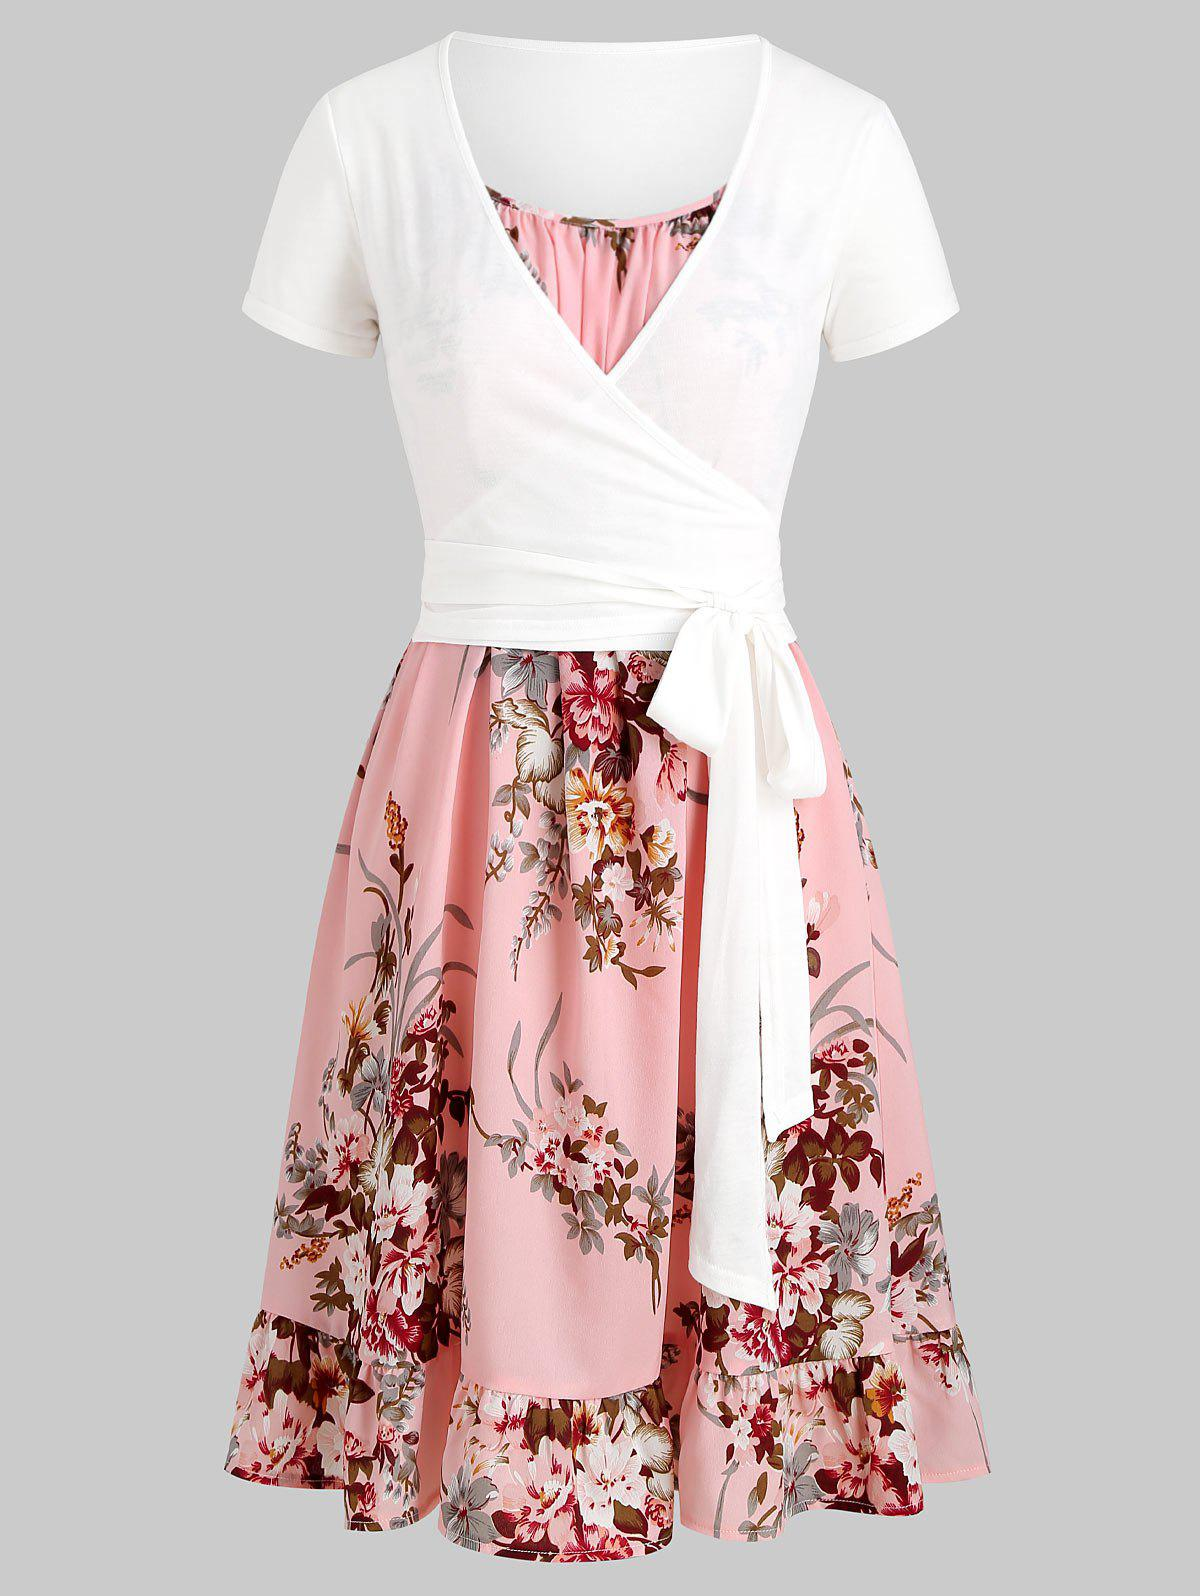 Floral Cami Flounce Dress with Wrap T-shirt - PINK L